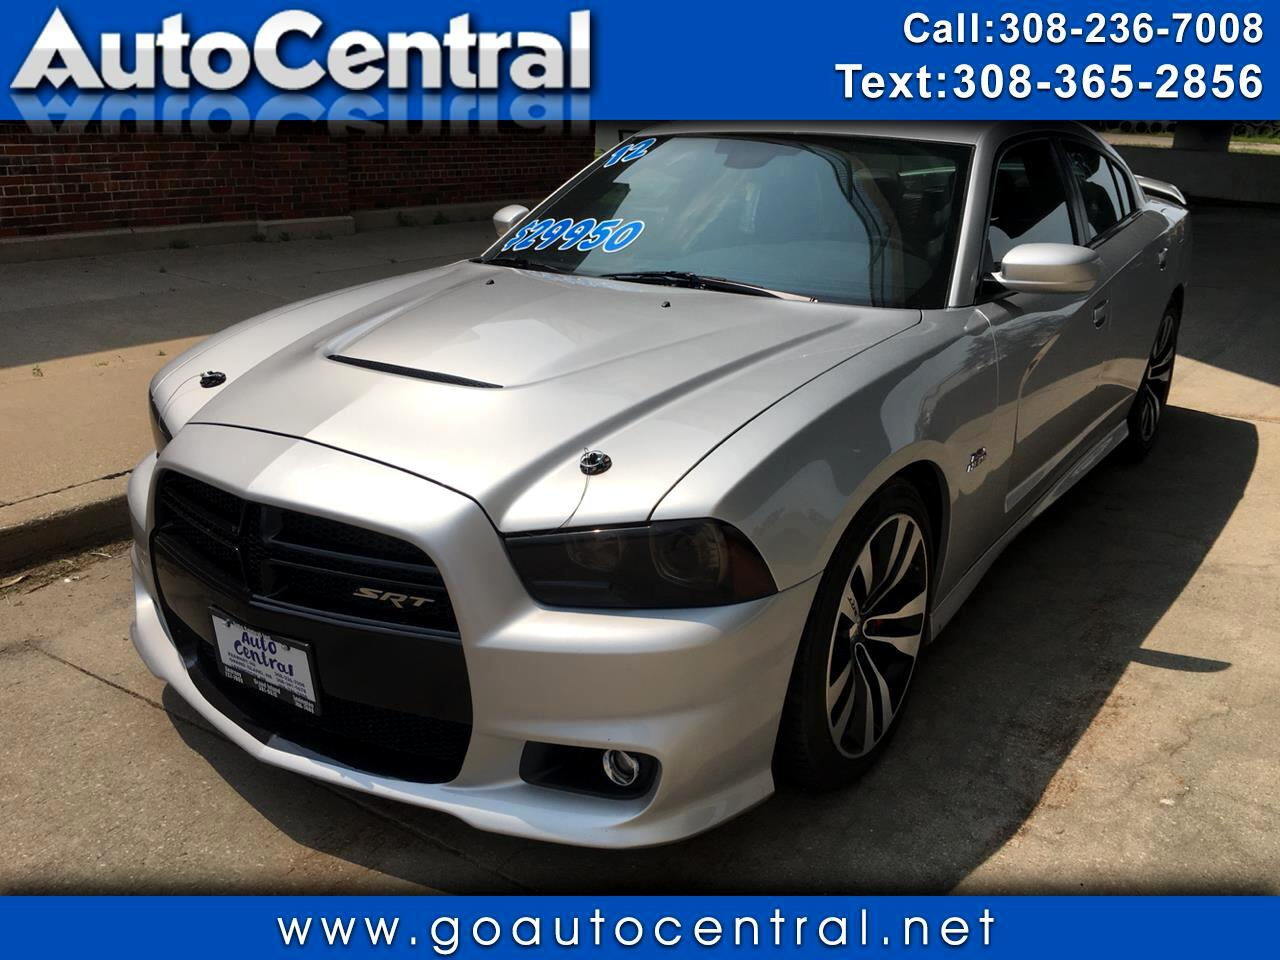 2012 Dodge Charger 4dr Sdn SRT8 RWD